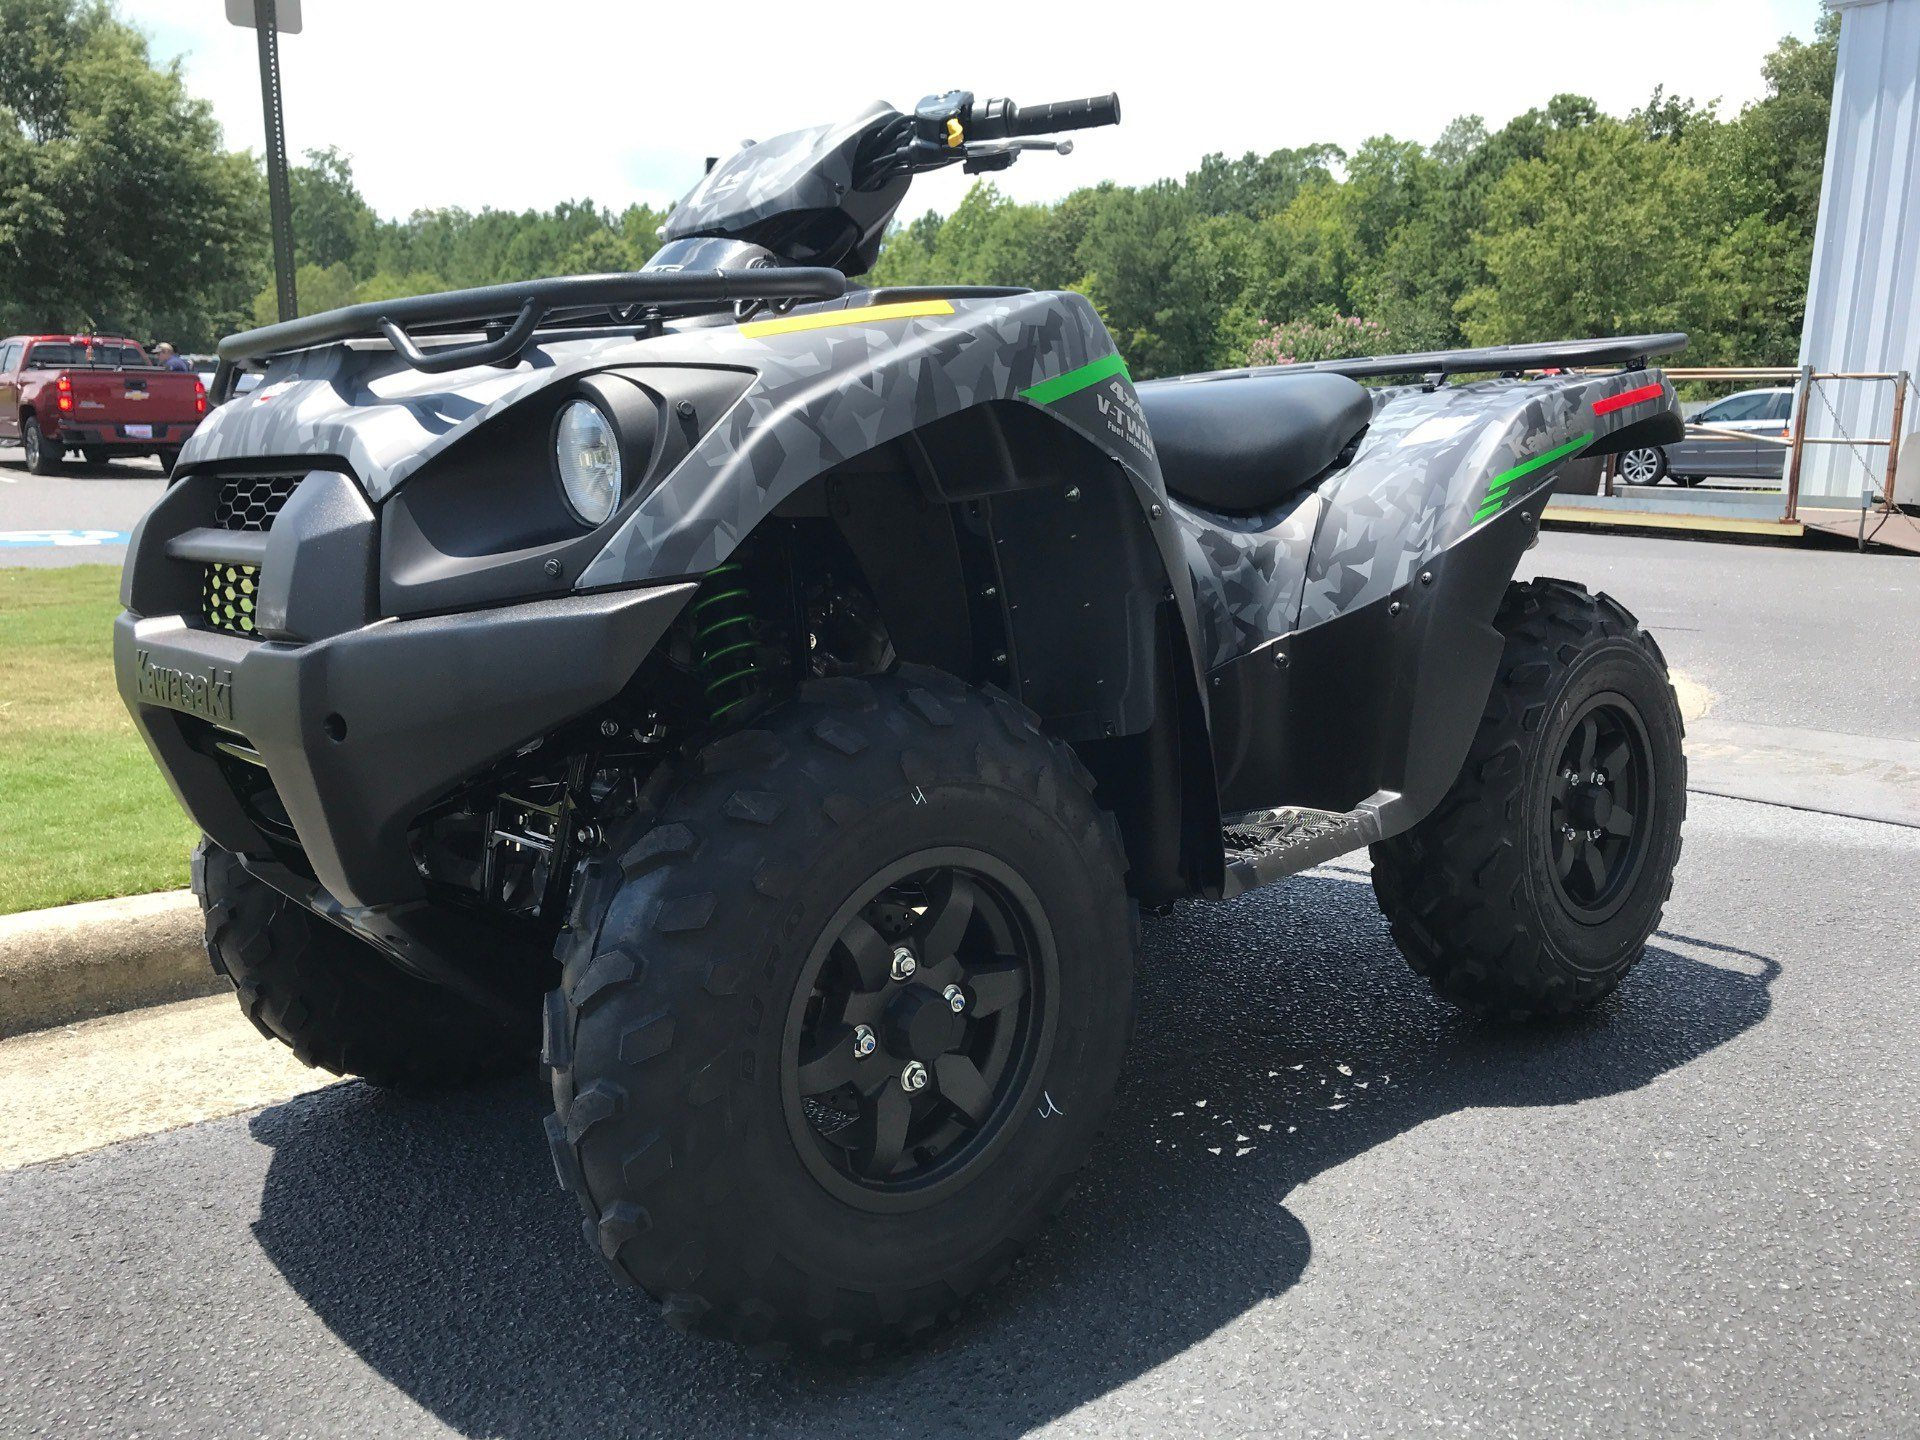 2021 Kawasaki Brute Force 750 4x4i EPS in Greenville, North Carolina - Photo 4